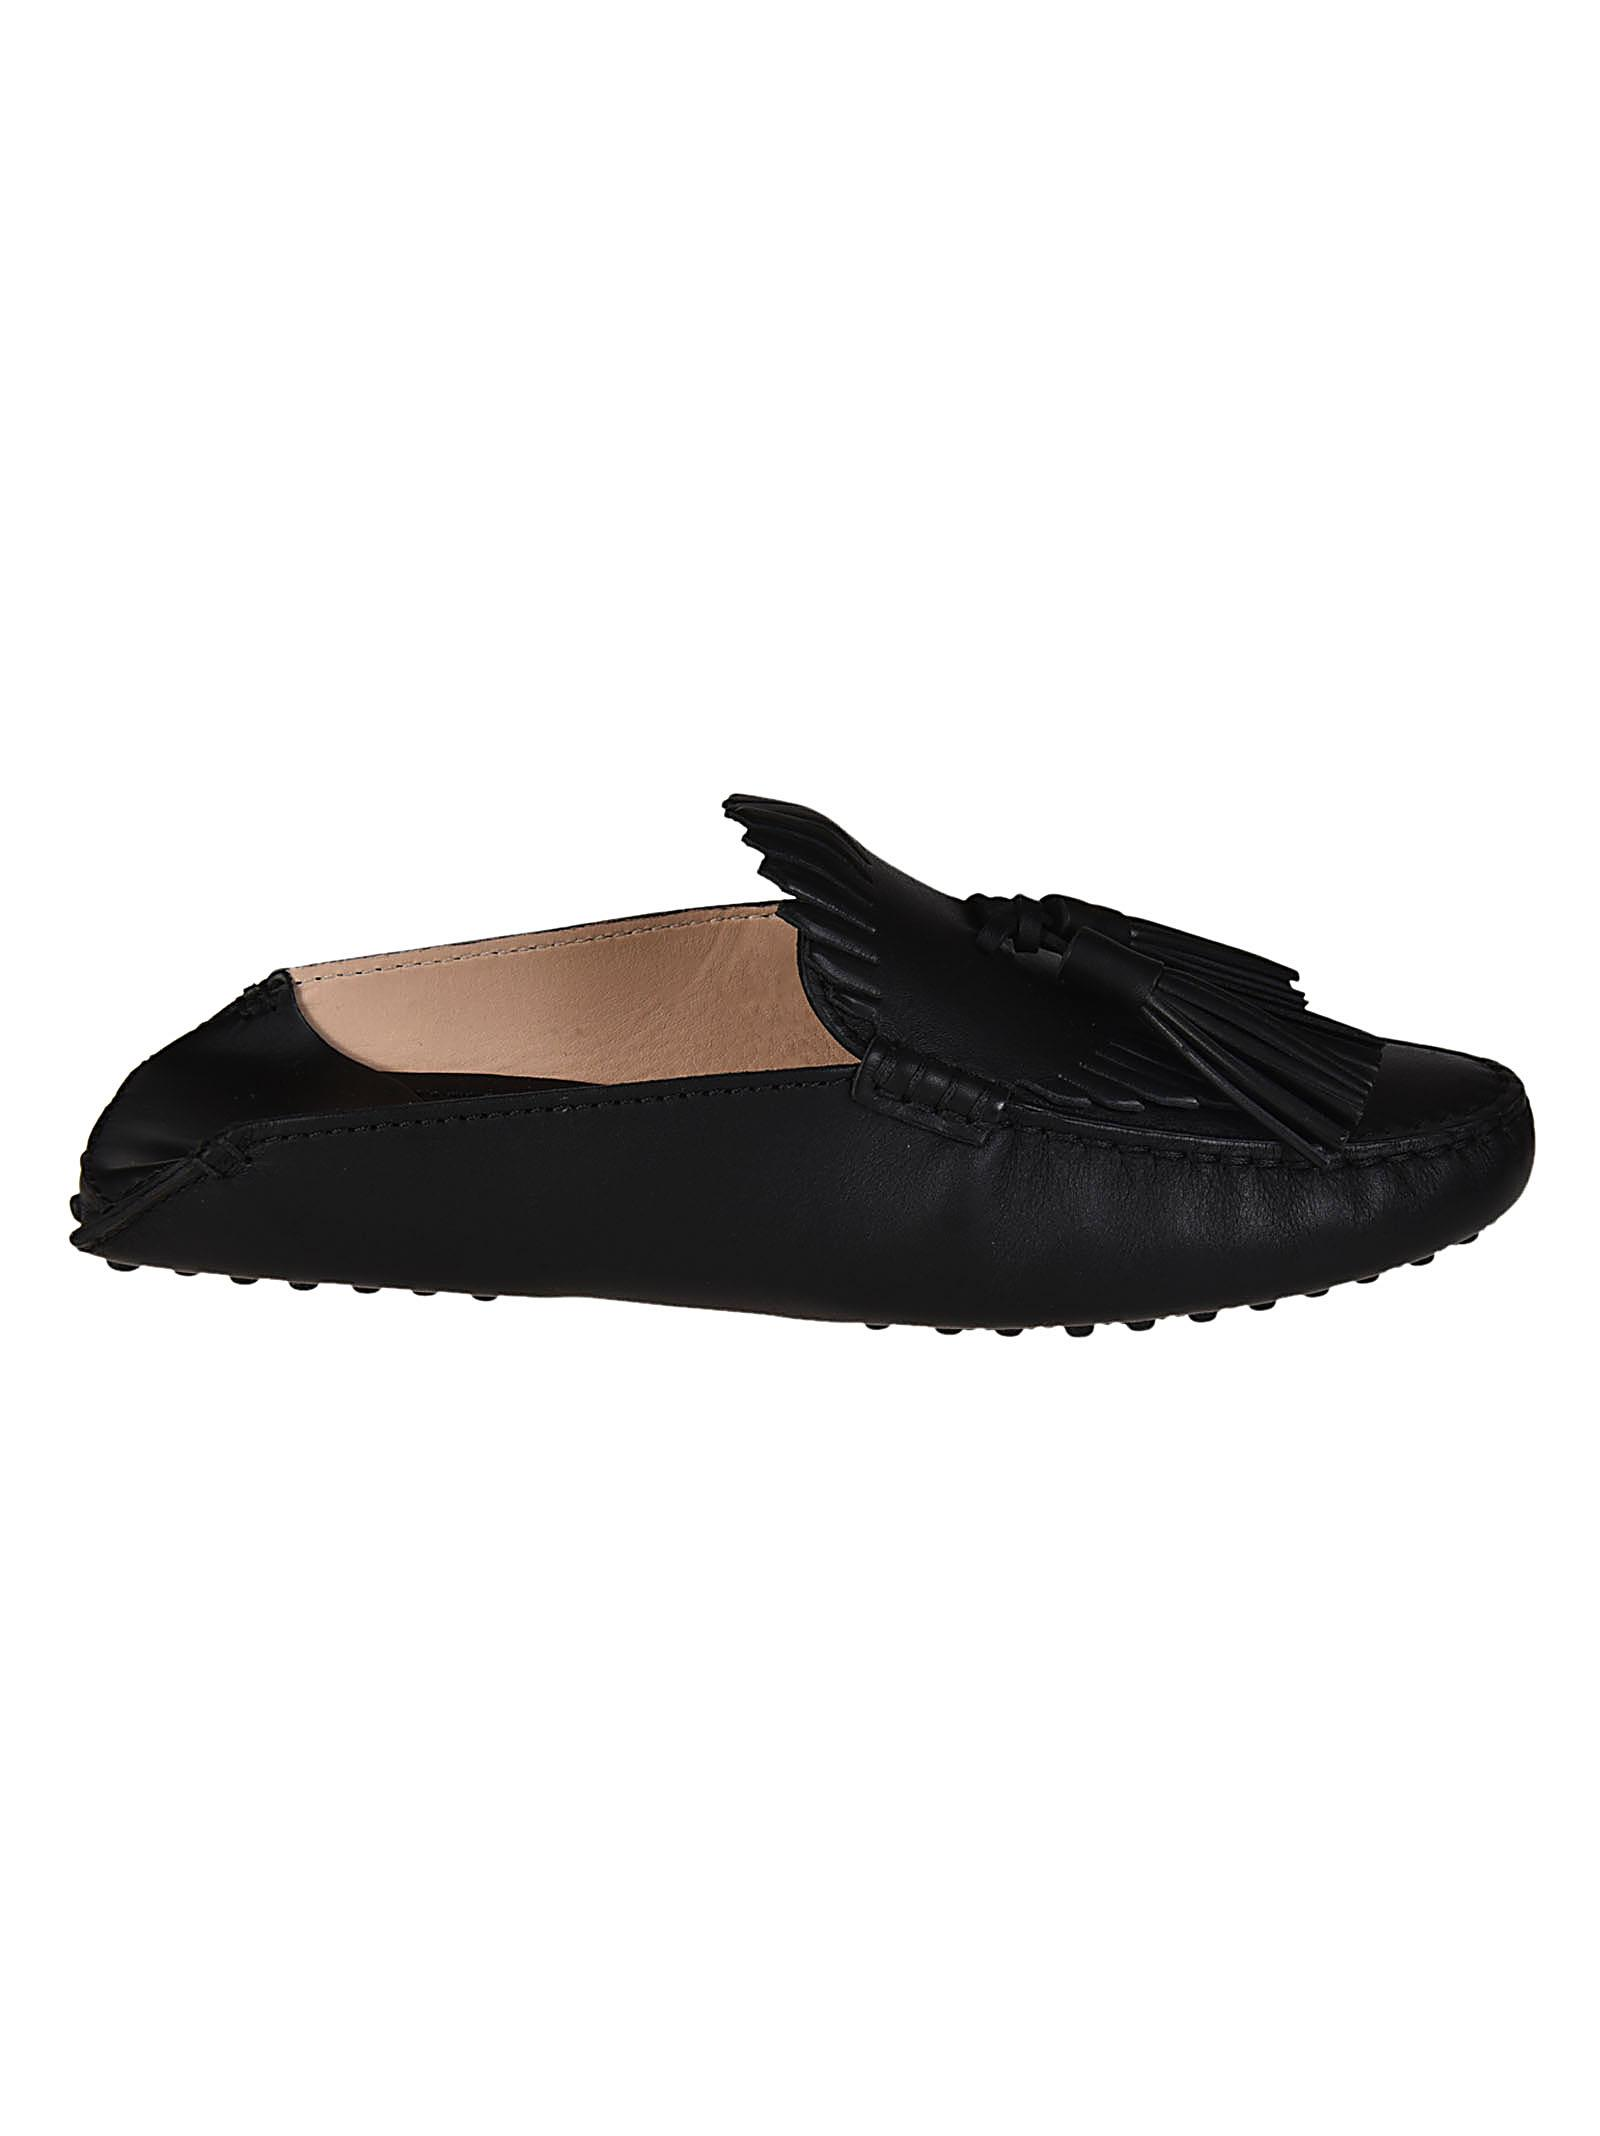 f2a1eb214 Black leather tasselled slippers - TOD'S - Paolo Fiorillo